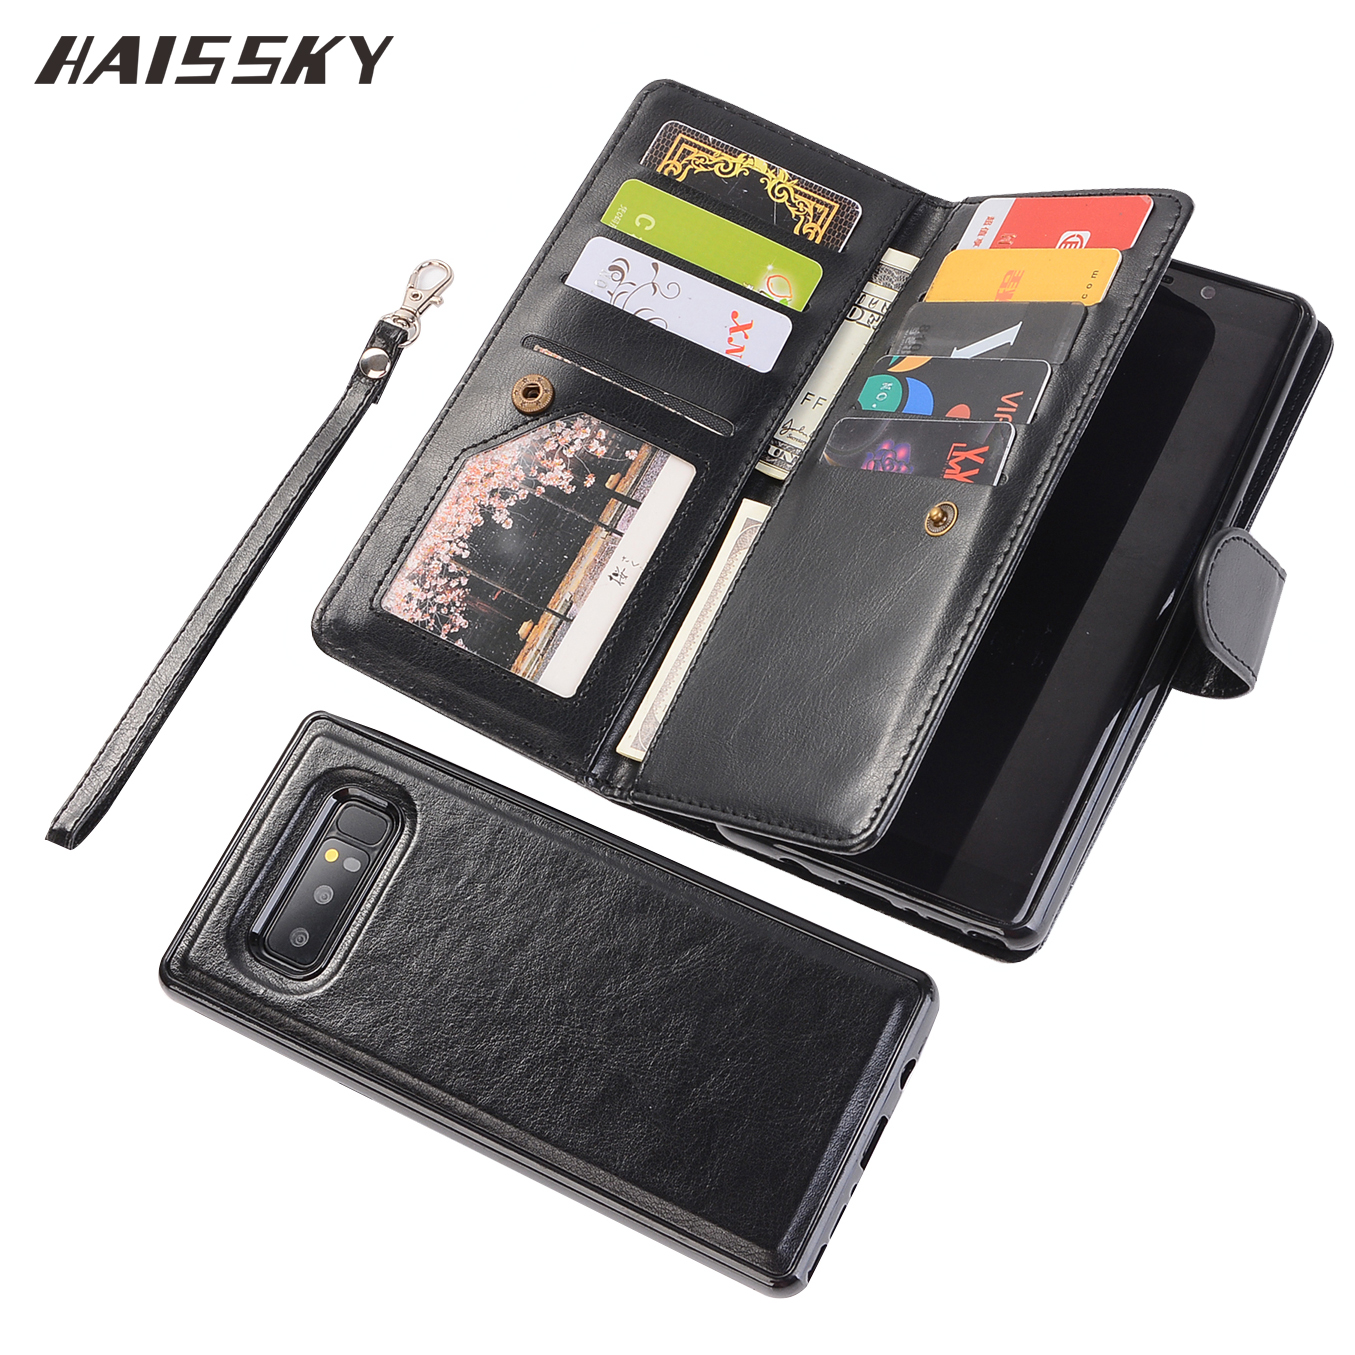 Luxury Magnetic Flip Cover For Samsung <font><b>Galaxy</b></font> Note 8 <font><b>S9</b></font> Plus <font><b>Case</b></font> Wallet 9 Cards <font><b>Galaxy</b></font> Note8 <font><b>S9</b></font> <font><b>Leather</b></font> Book Fundas Phone Shell image